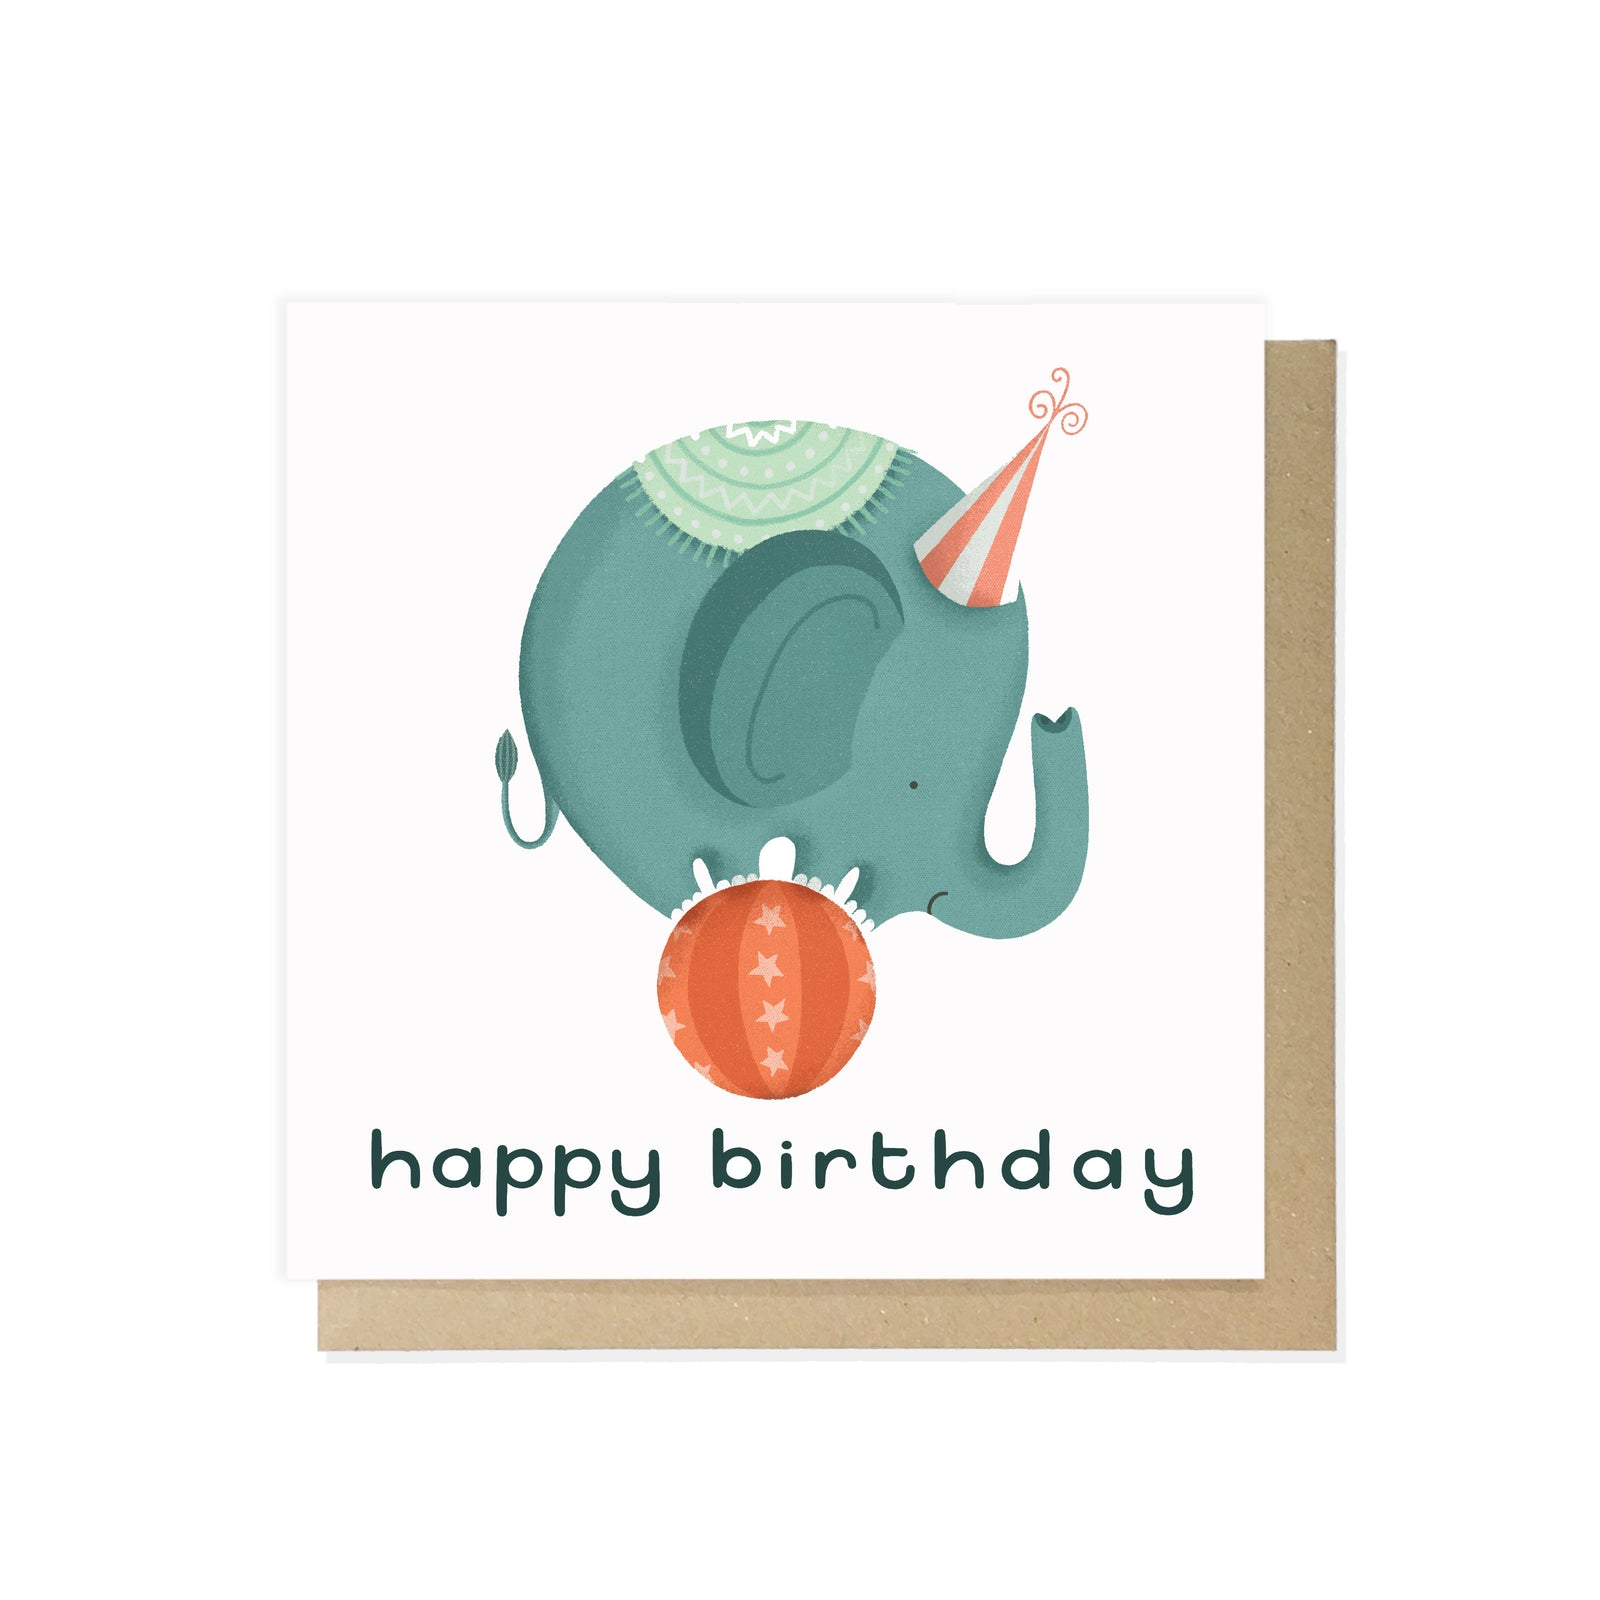 Happy Birthday Elephant by Lauren Radley